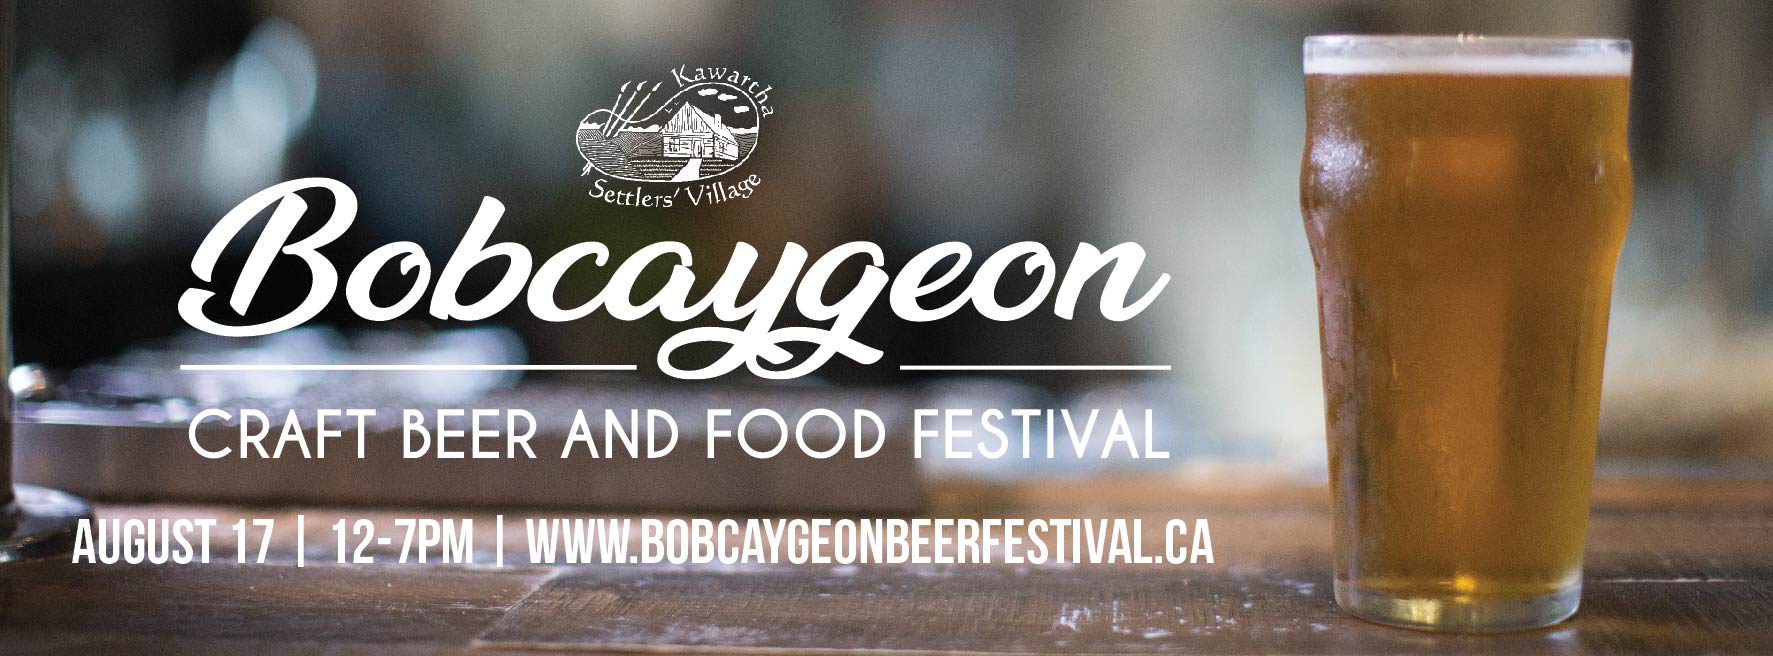 Bobcaygeon Craft Beer and Food Festival